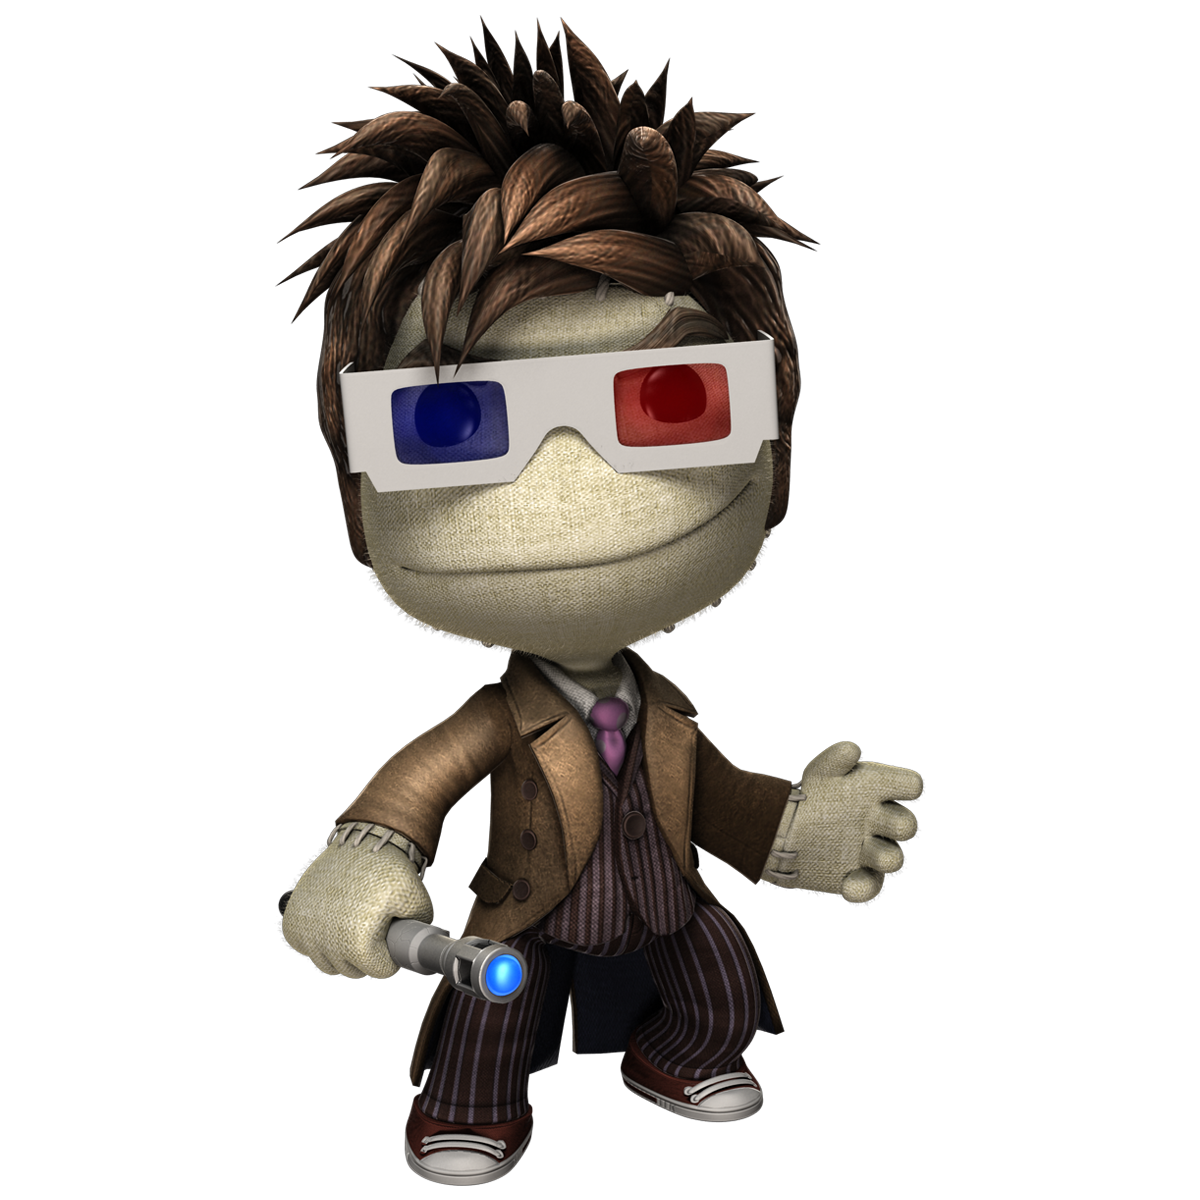 Sackboy drawing. Doctor who is arriving